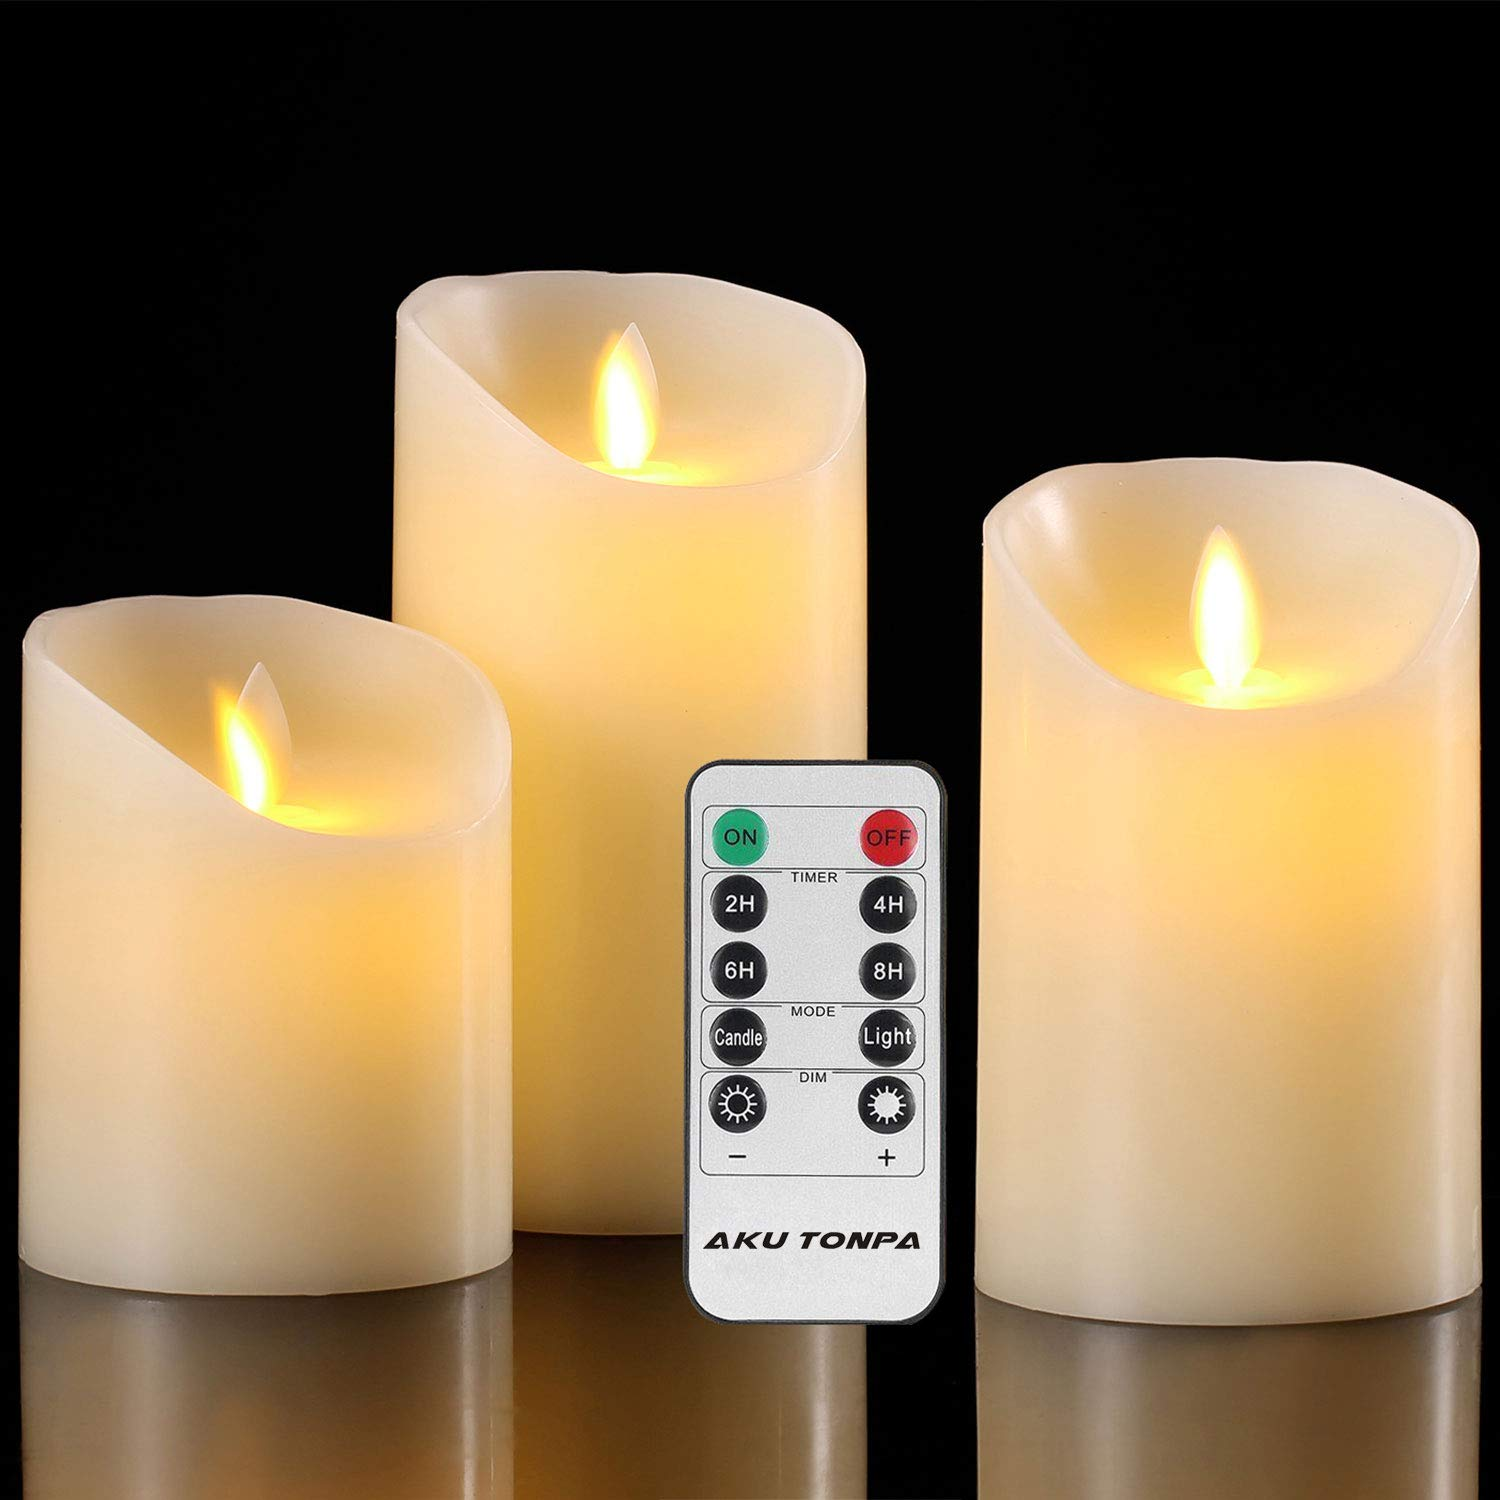 Aku Tonpa Flameless Candles Battery Operated Pillar Real Wax Flickering Moving Wick Electric LED Candle Gift Set with Remote Control Cycling 24 Hours Timer, Pack of 3 (D:3.25'' X H:4'' 5'' 6'')